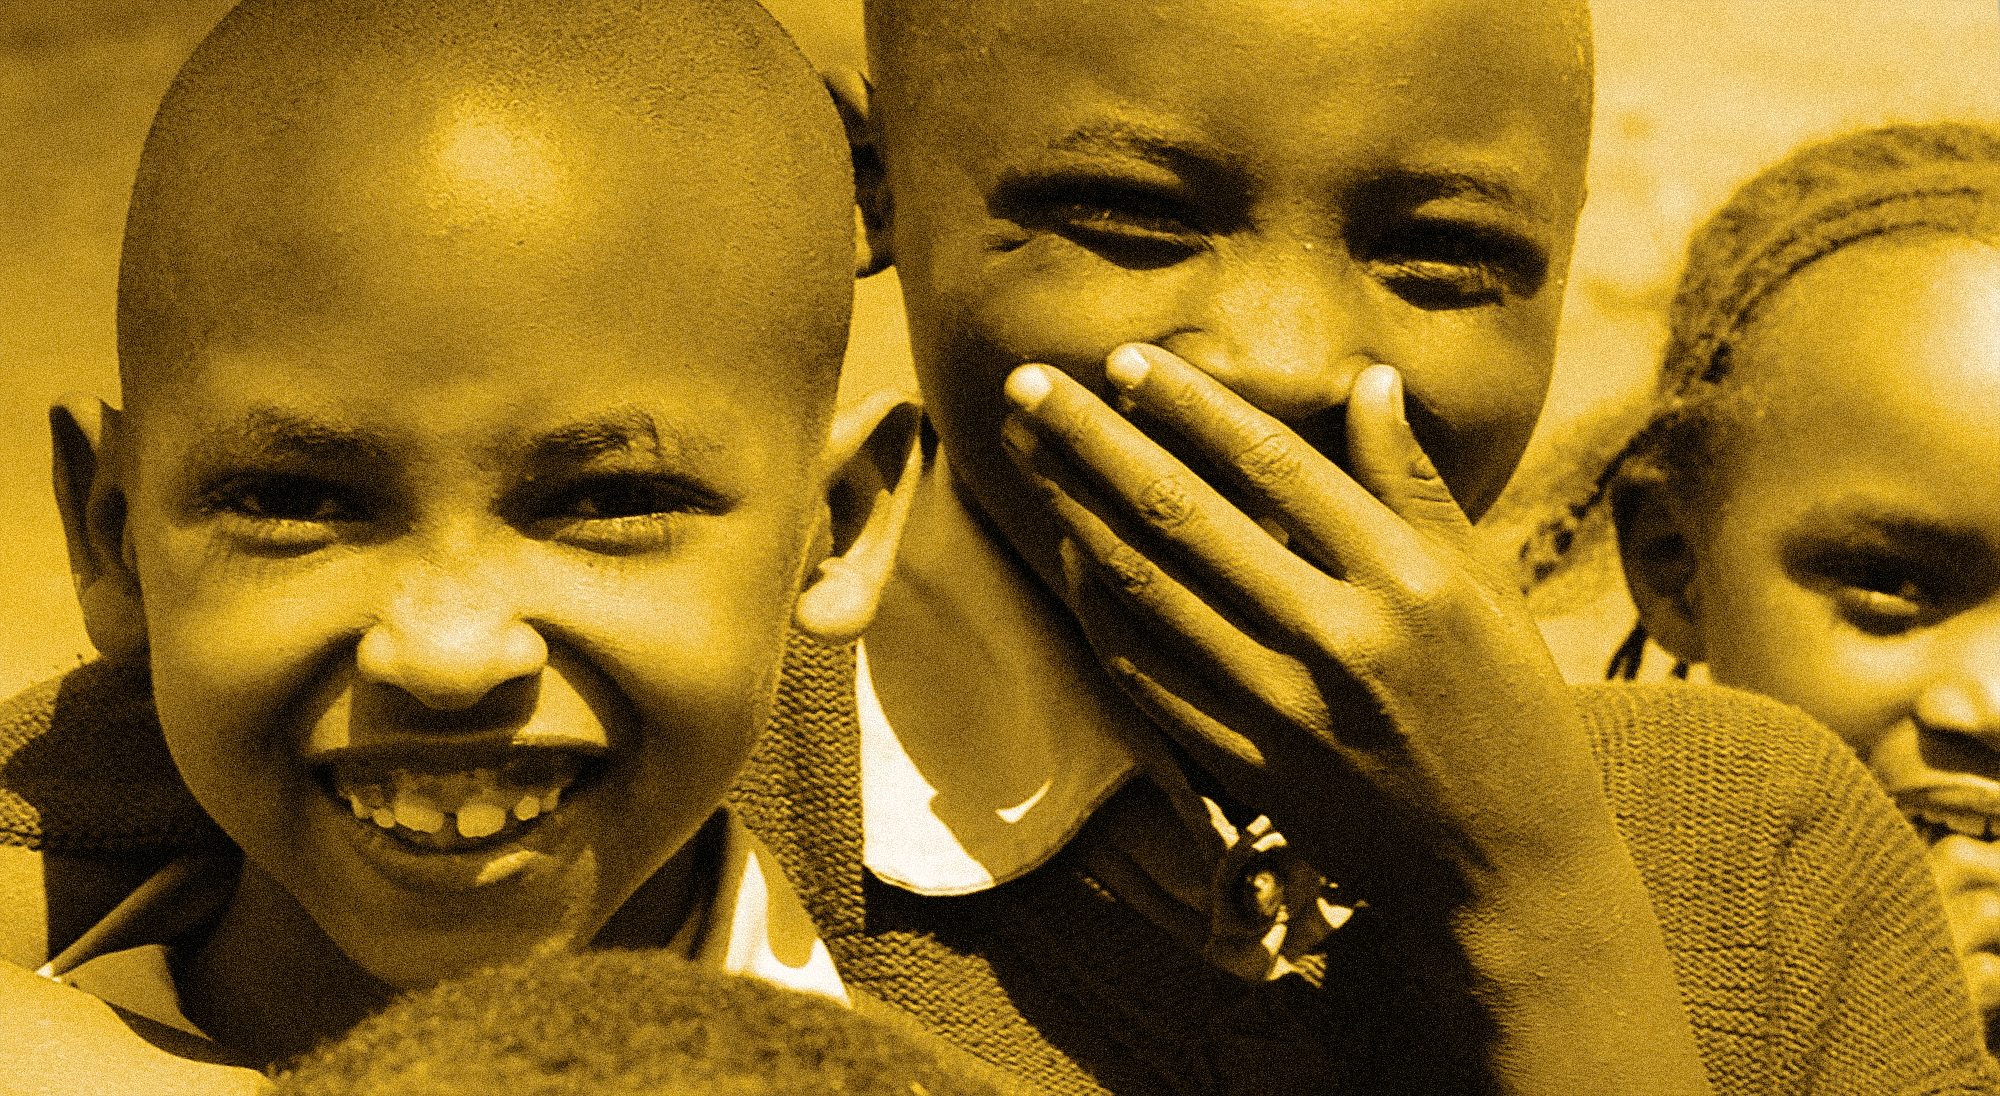 Portrait of children smiling with duotone yellow and black effect